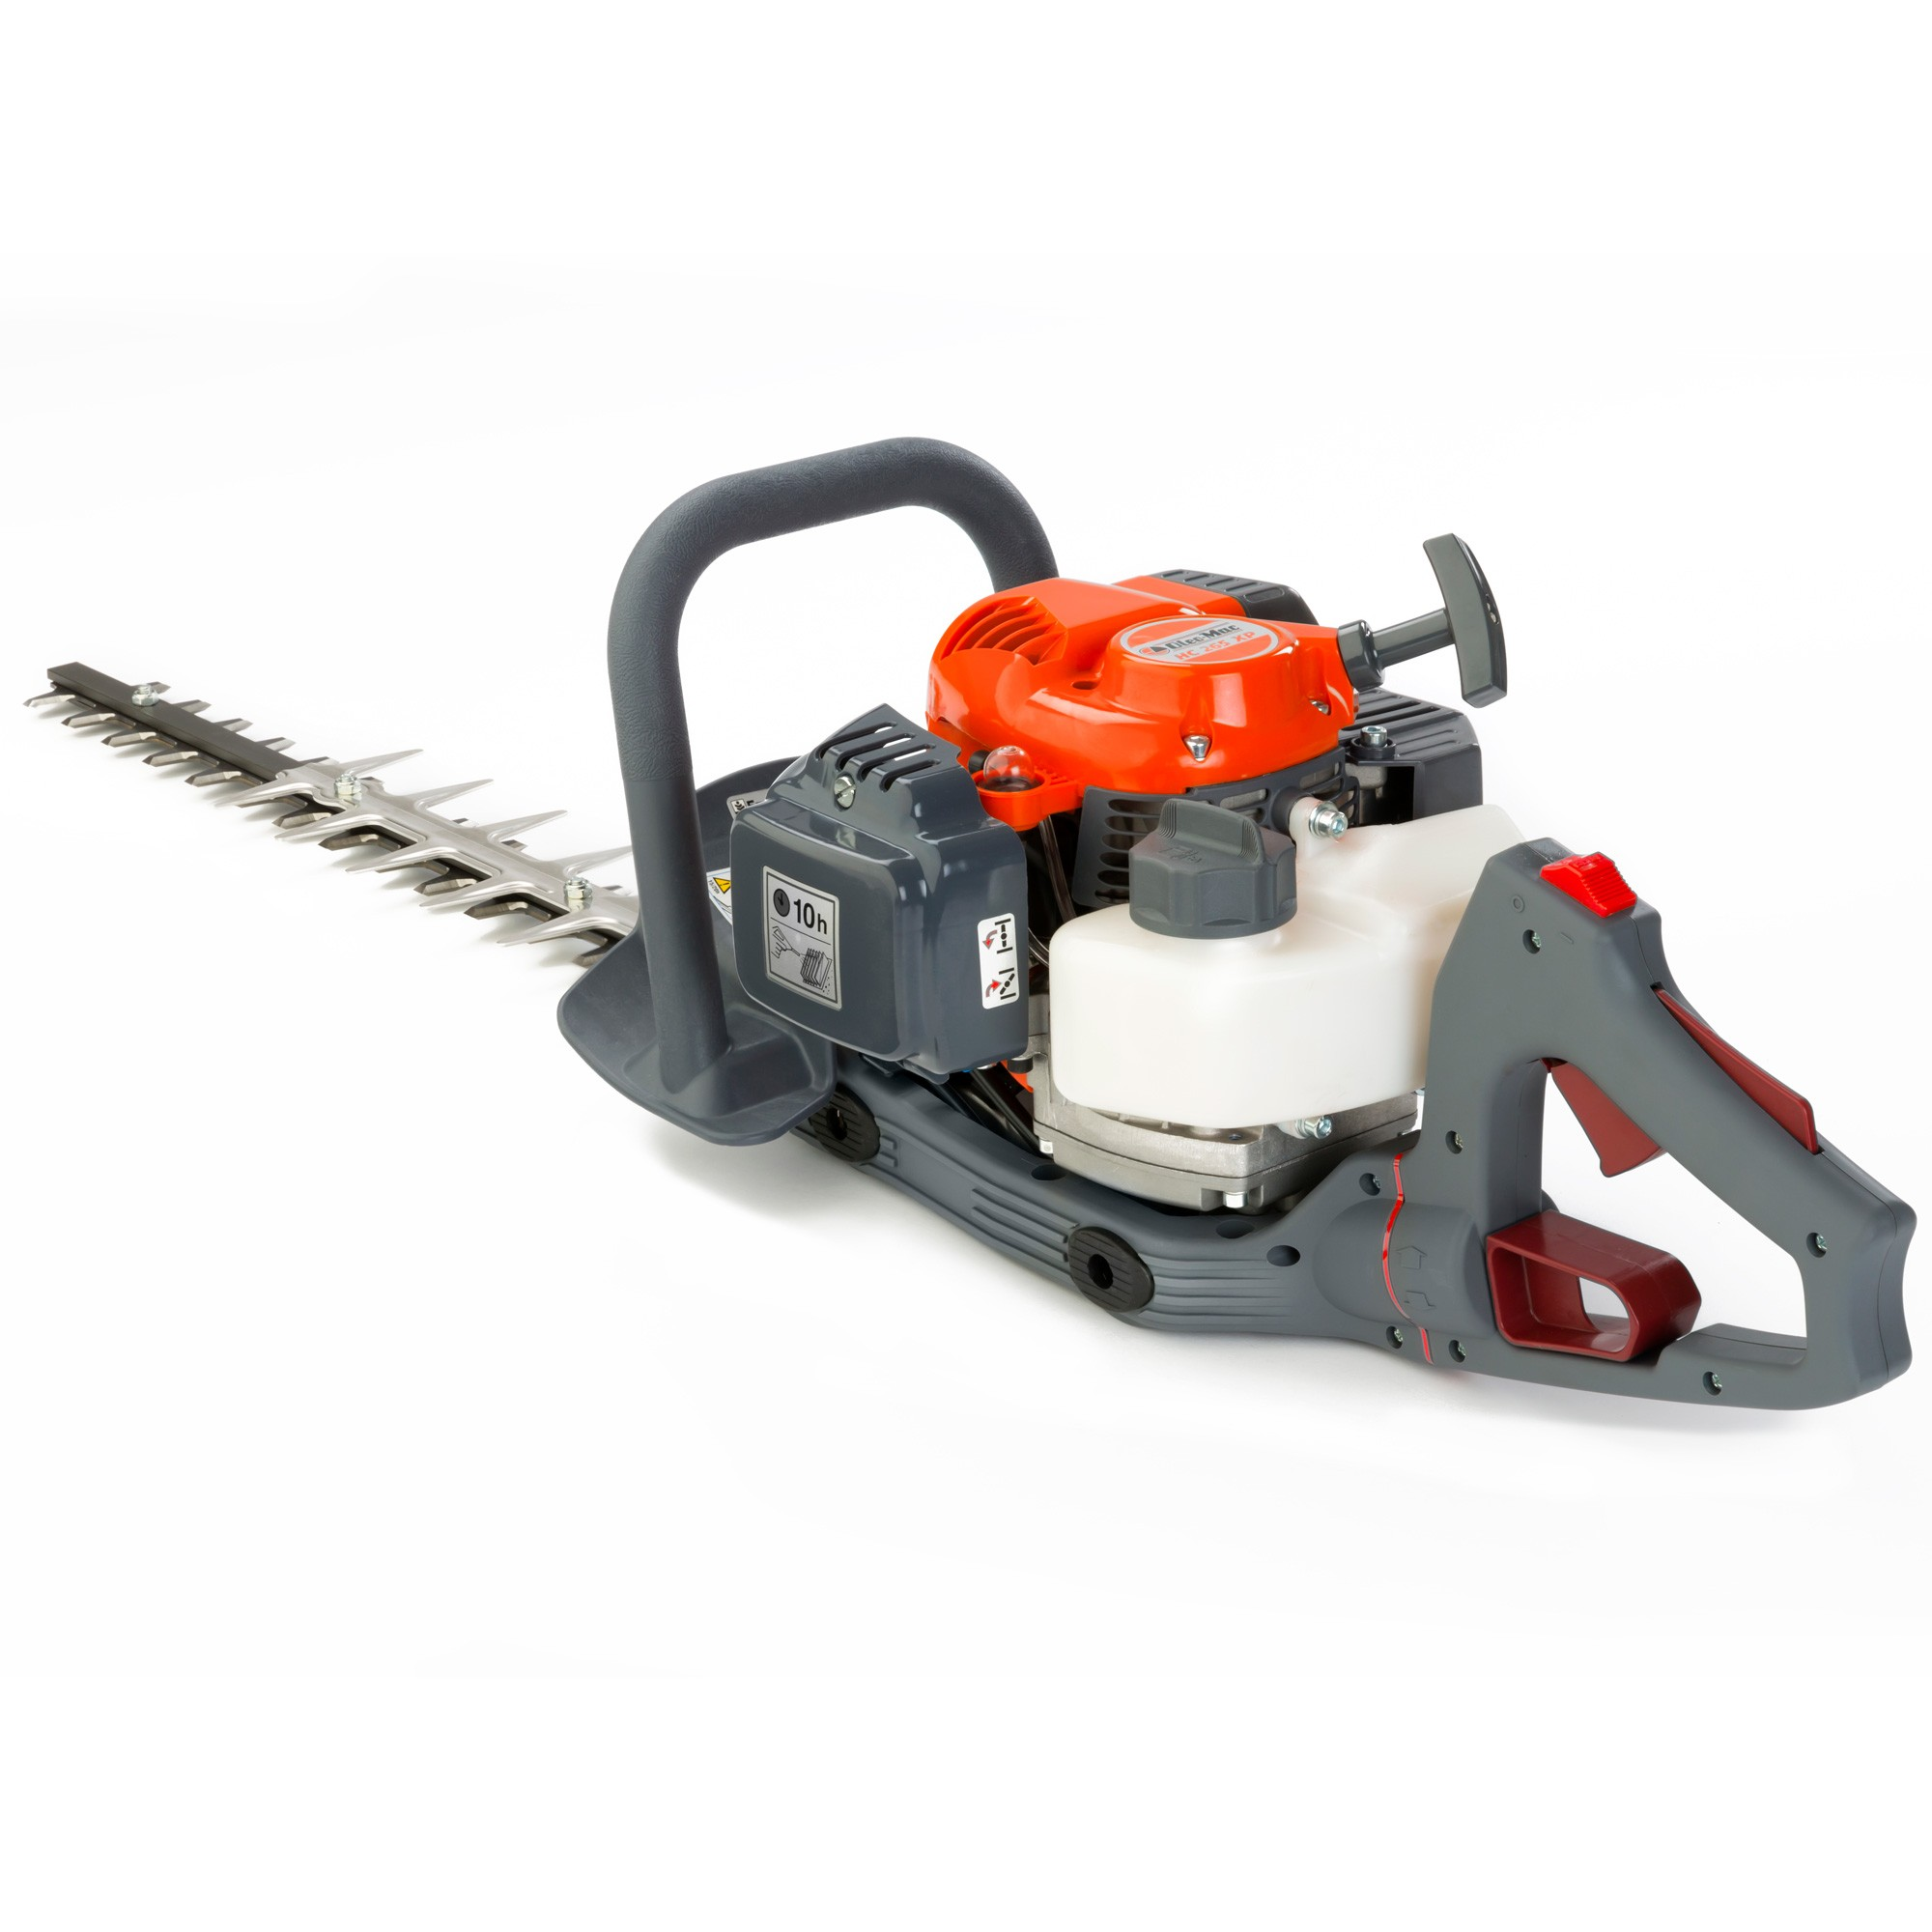 Oleo-Mac HC265XP Heavy-Duty Petrol Hedgecutter (Exclusive Special Offer)